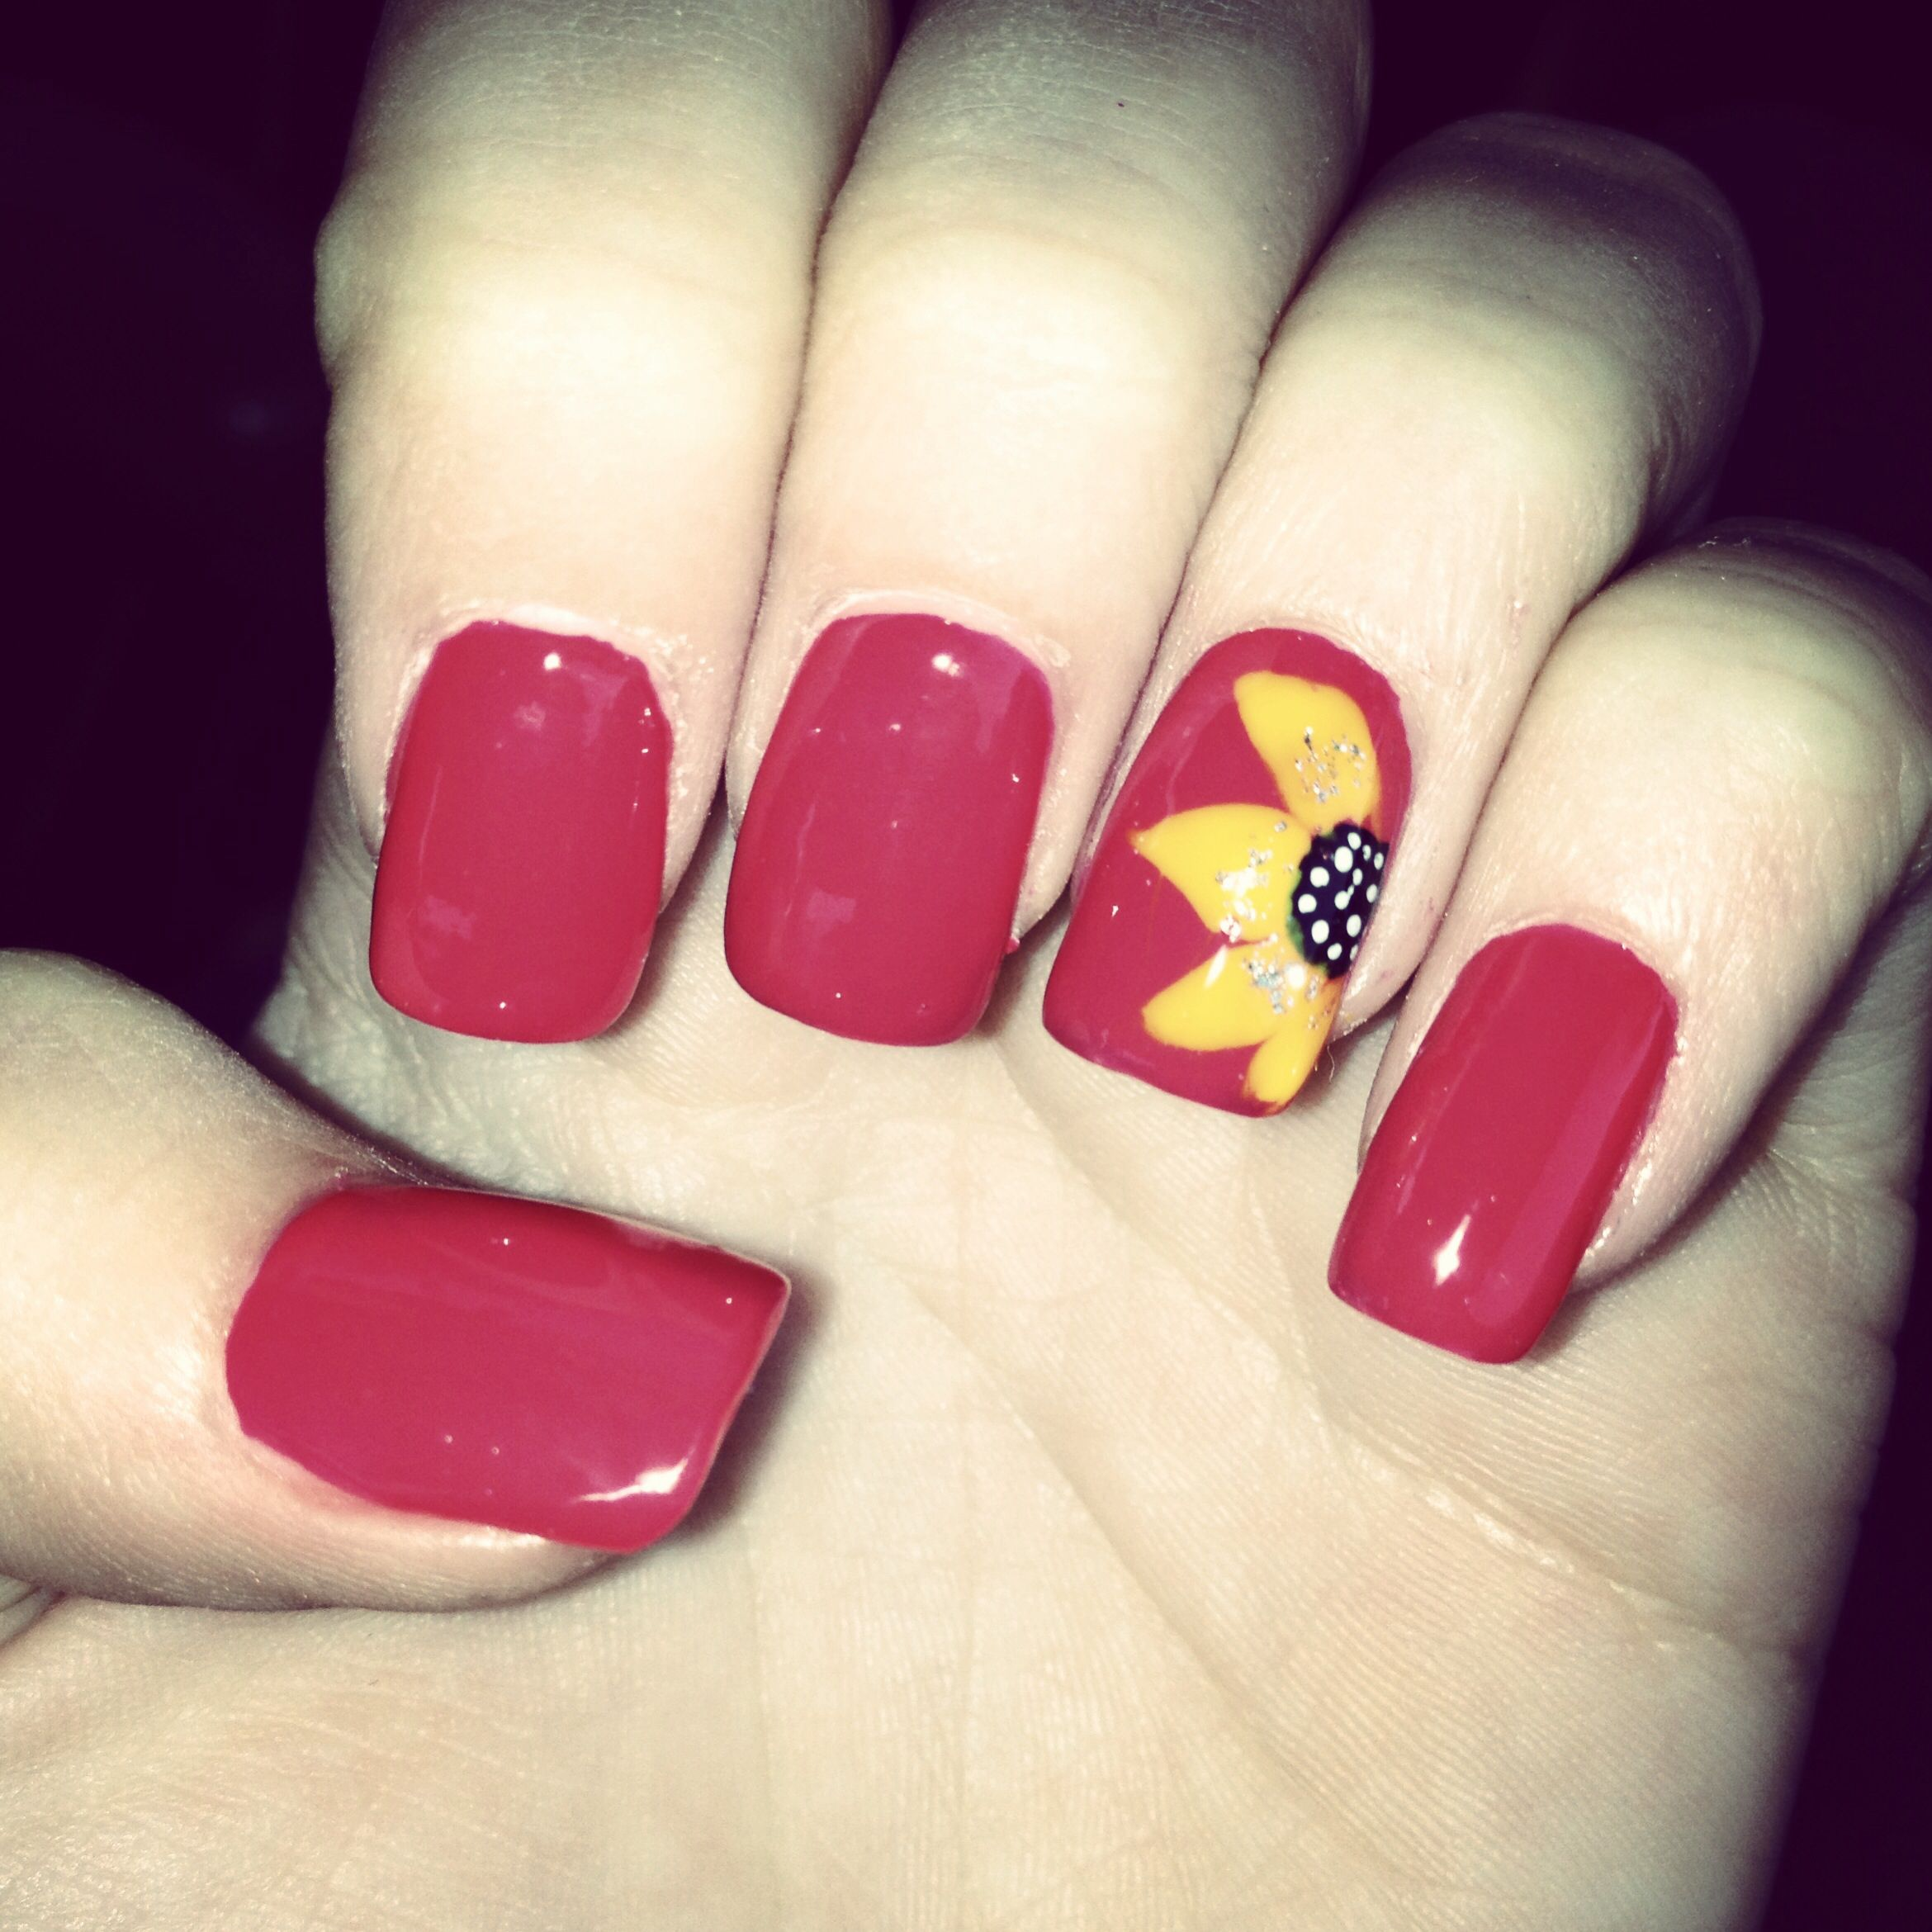 Maroon Nails With Sunflower Accent Nail Maroon Nails Sunflower Nails Nails